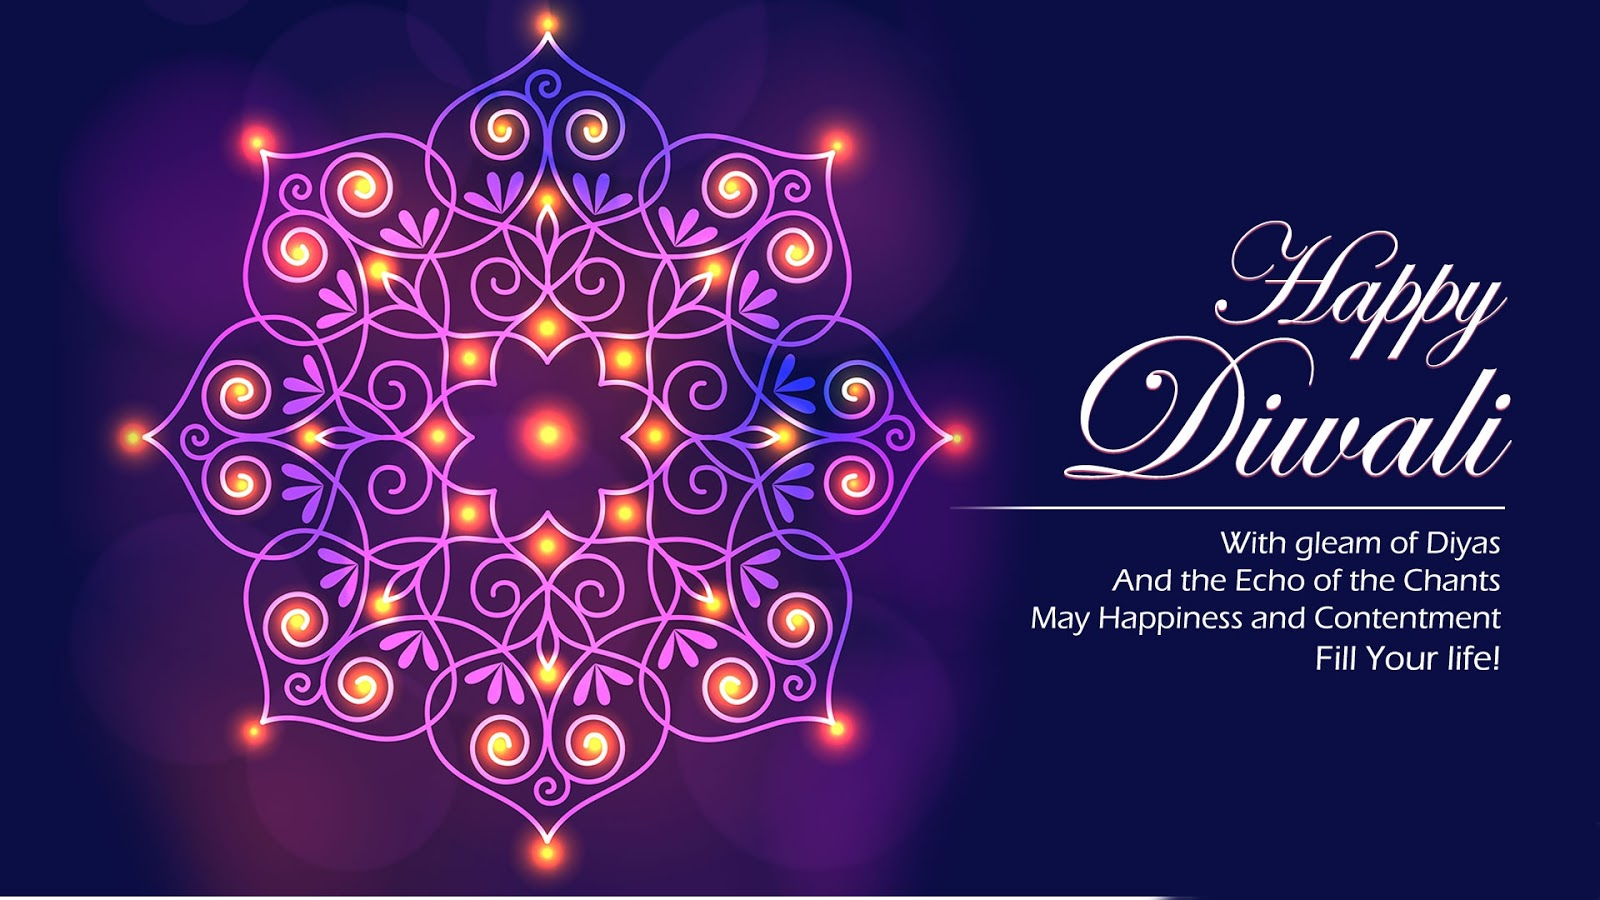 Happy Dewali Images